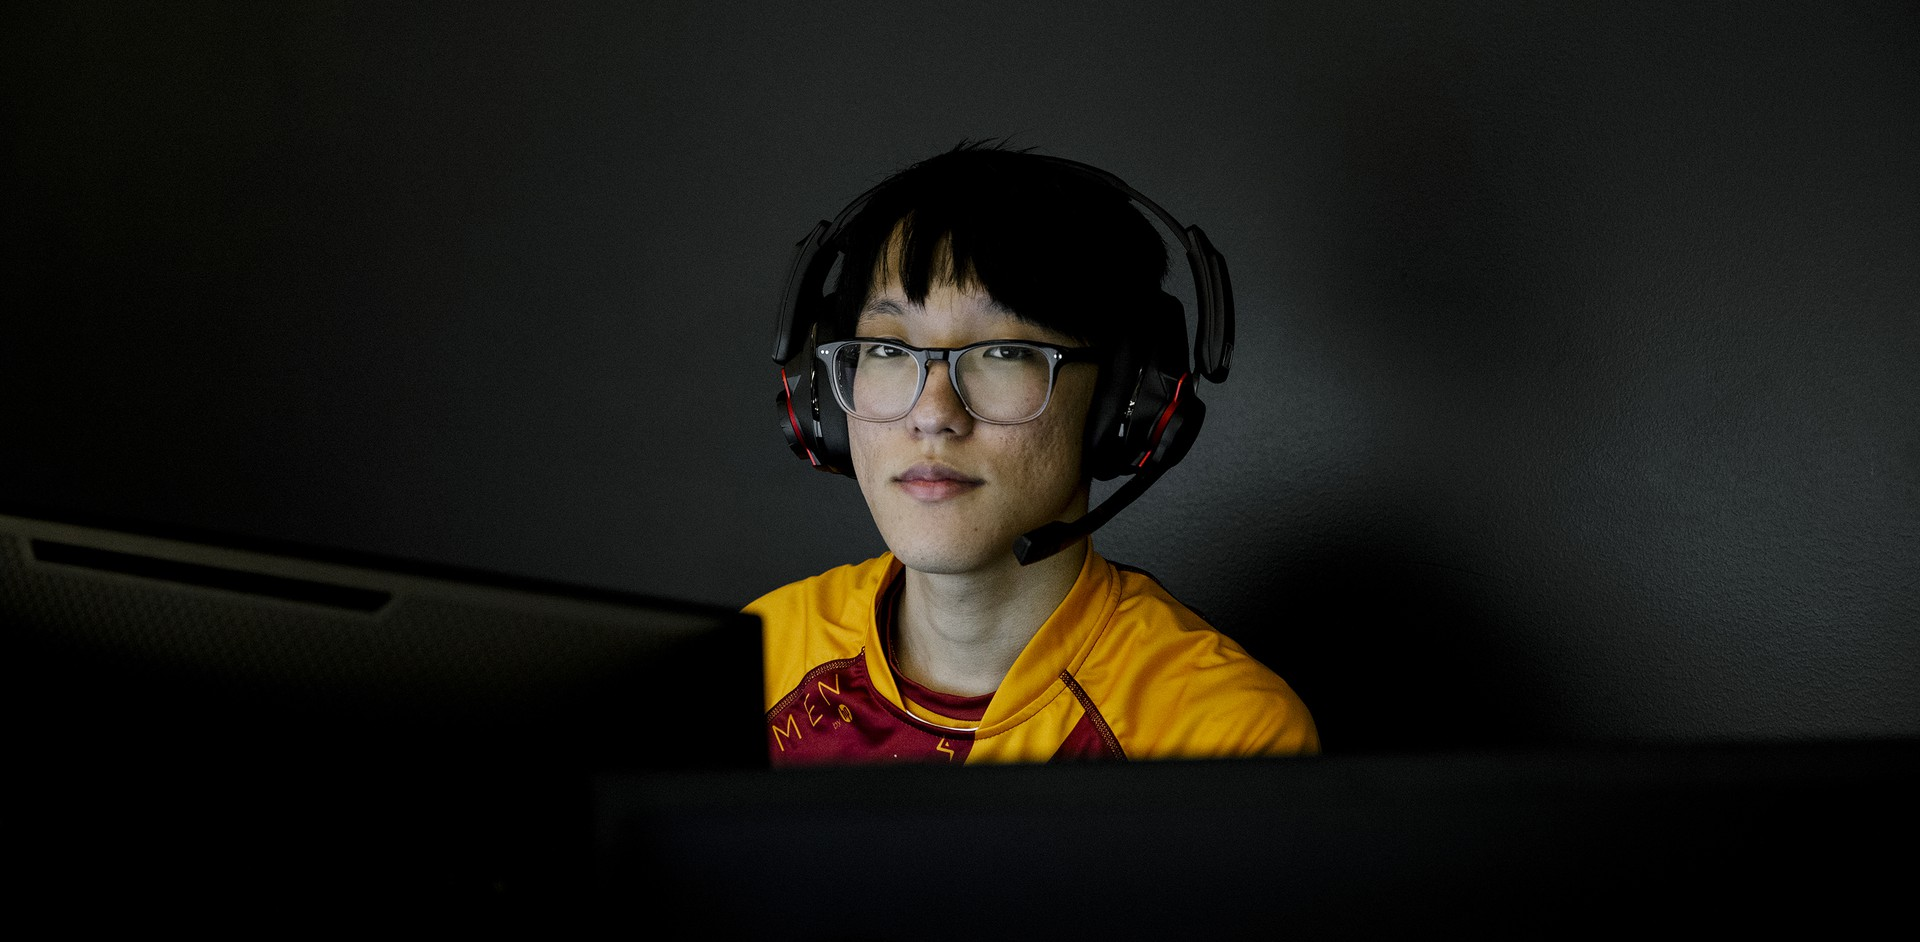 The League of Legends player Titus Bang